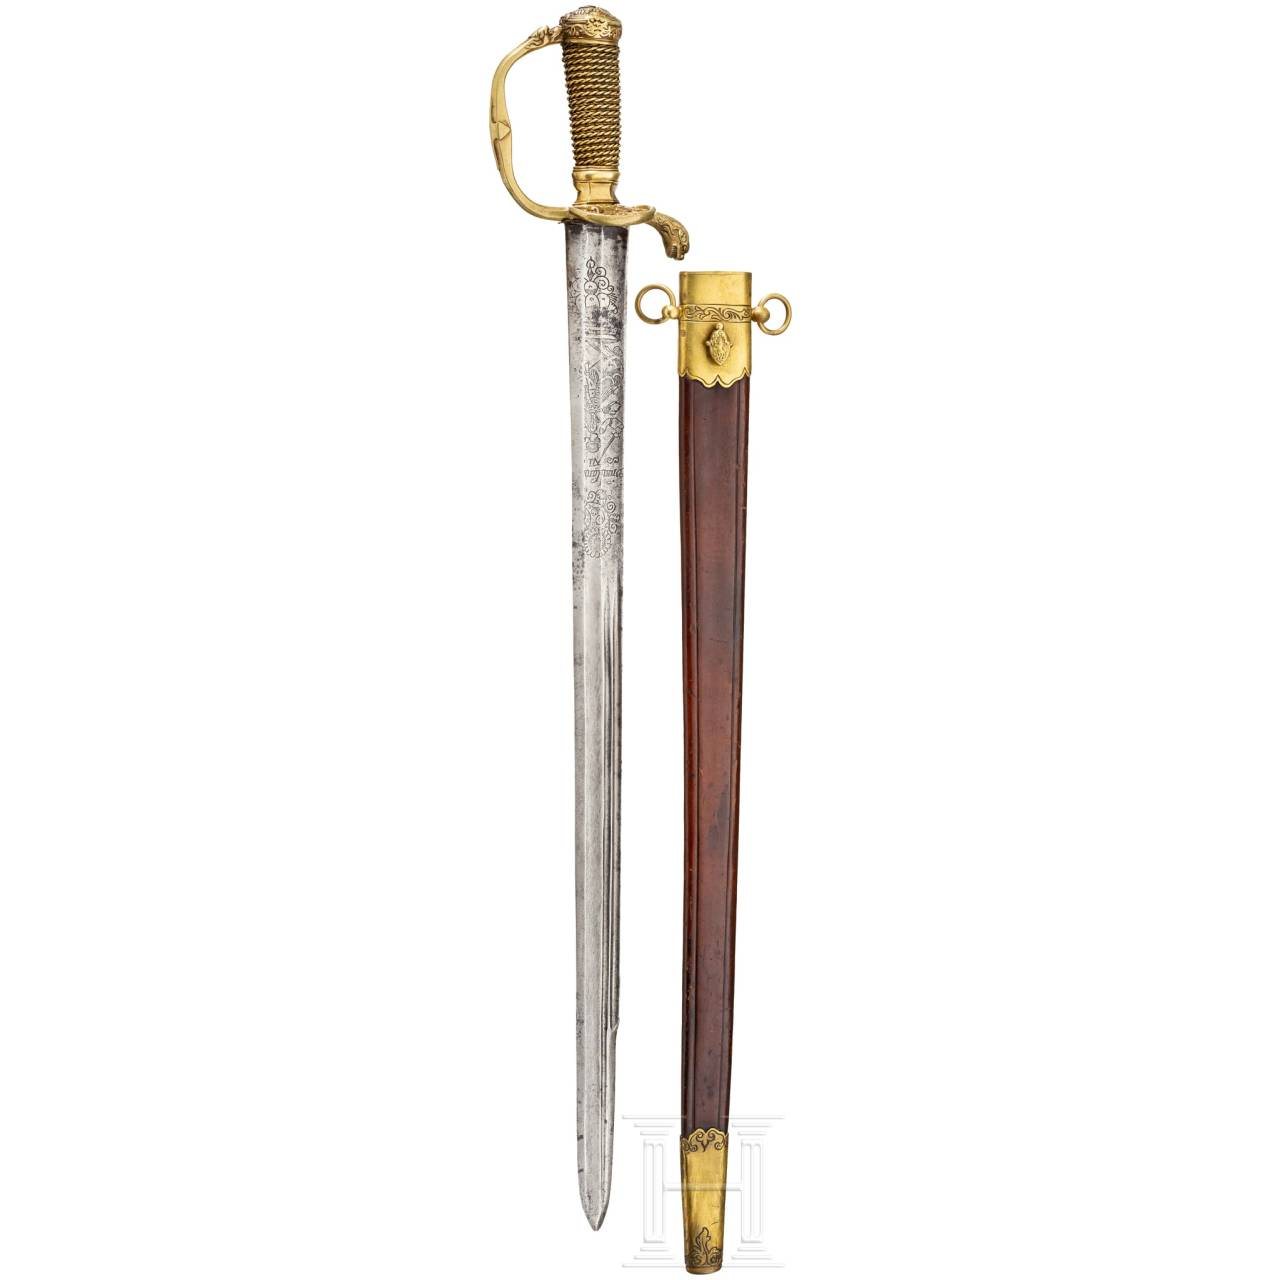 A German hunting sword with scabbard, 18th century